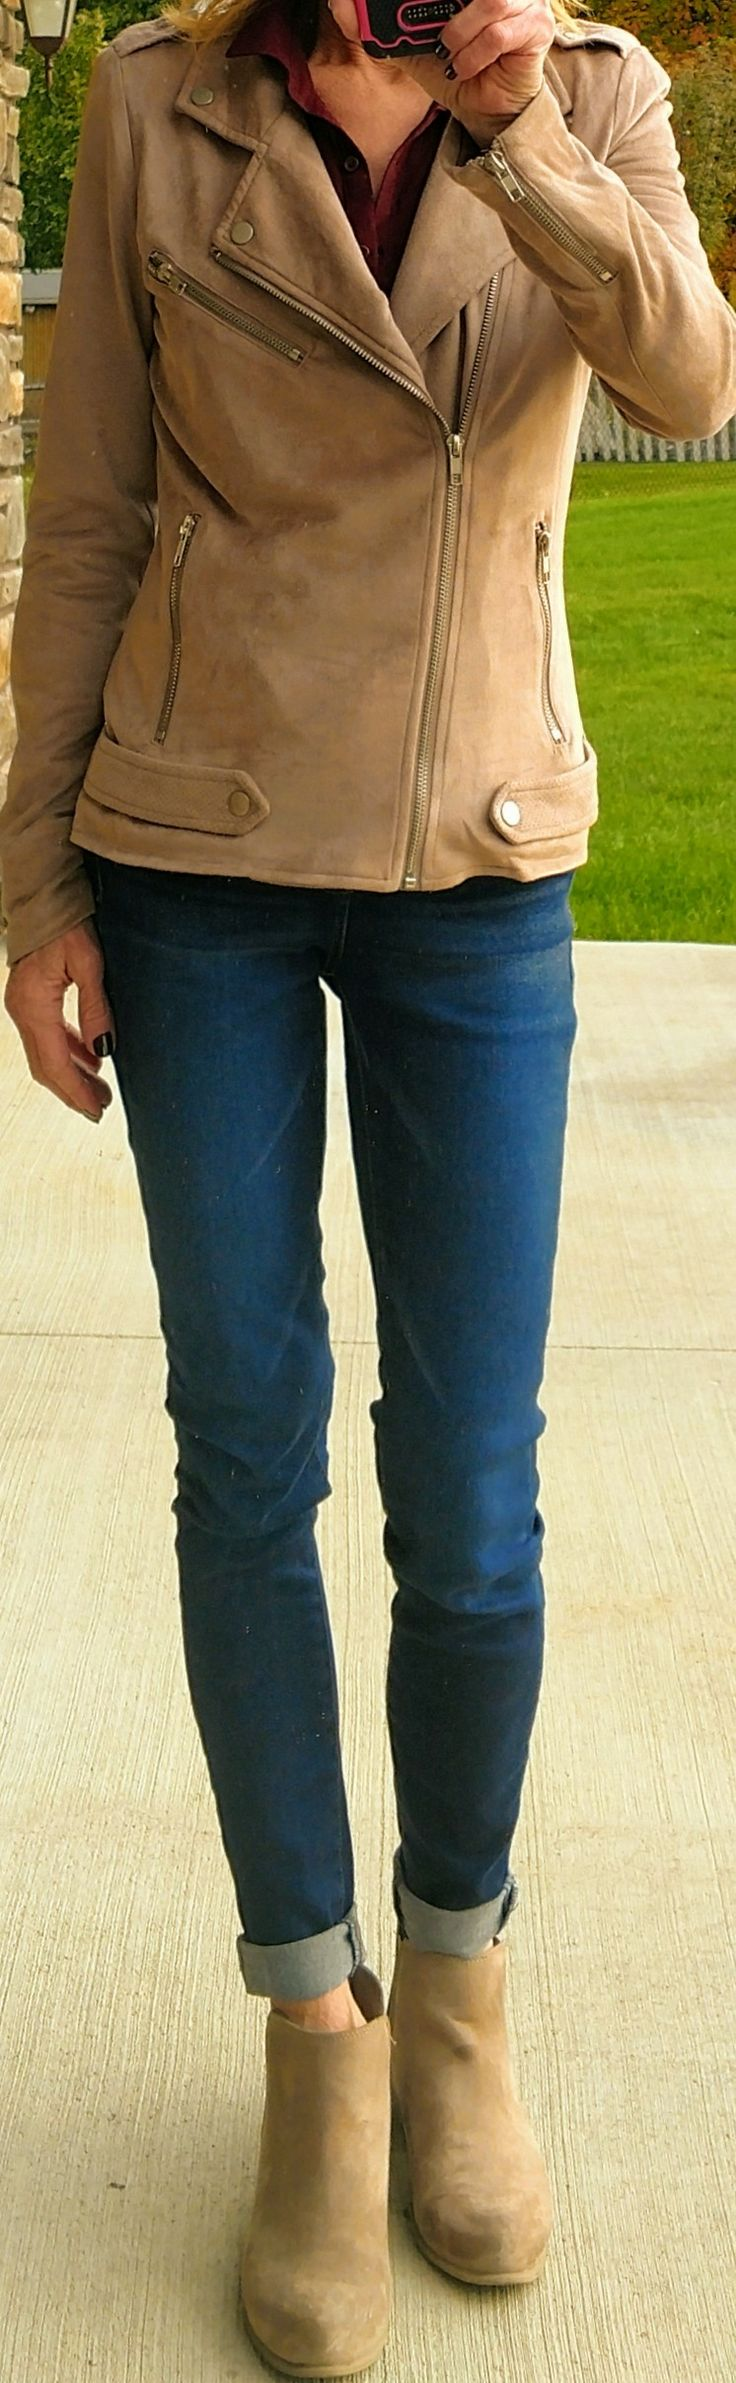 Stitch Fix Pixley Kendari Faux Suede Jacket. https://www.stitchfix.com/referral/10834336?sod=a&som=c